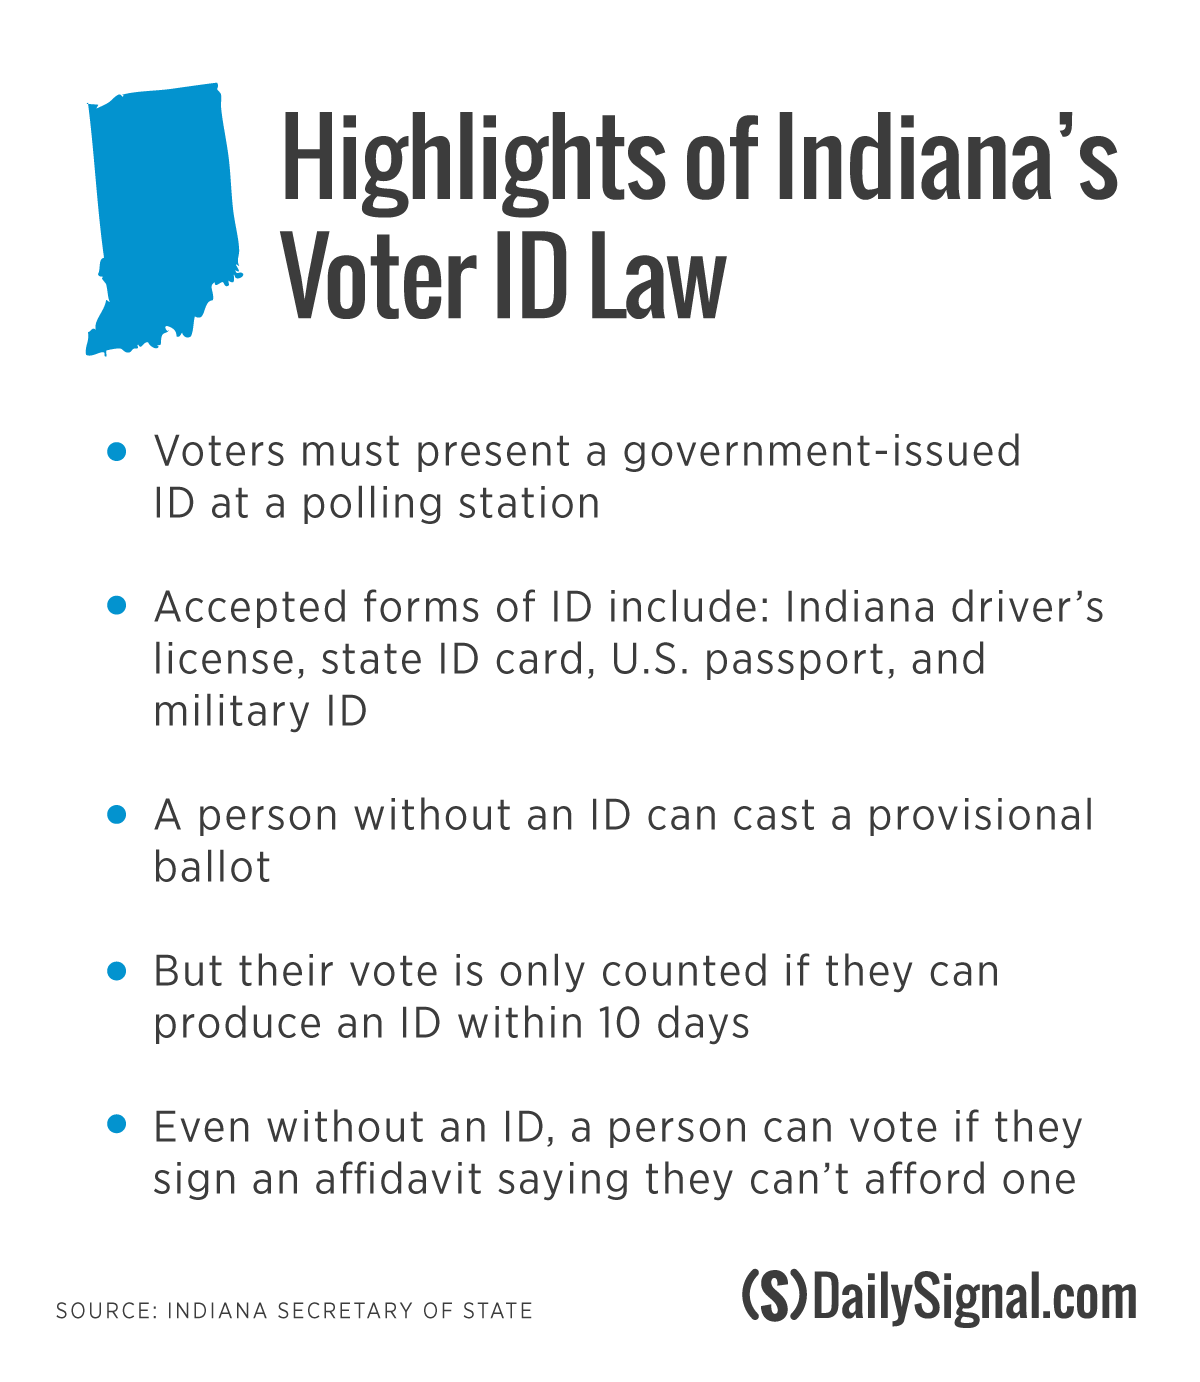 160805_voter-id-indiana-law_v1